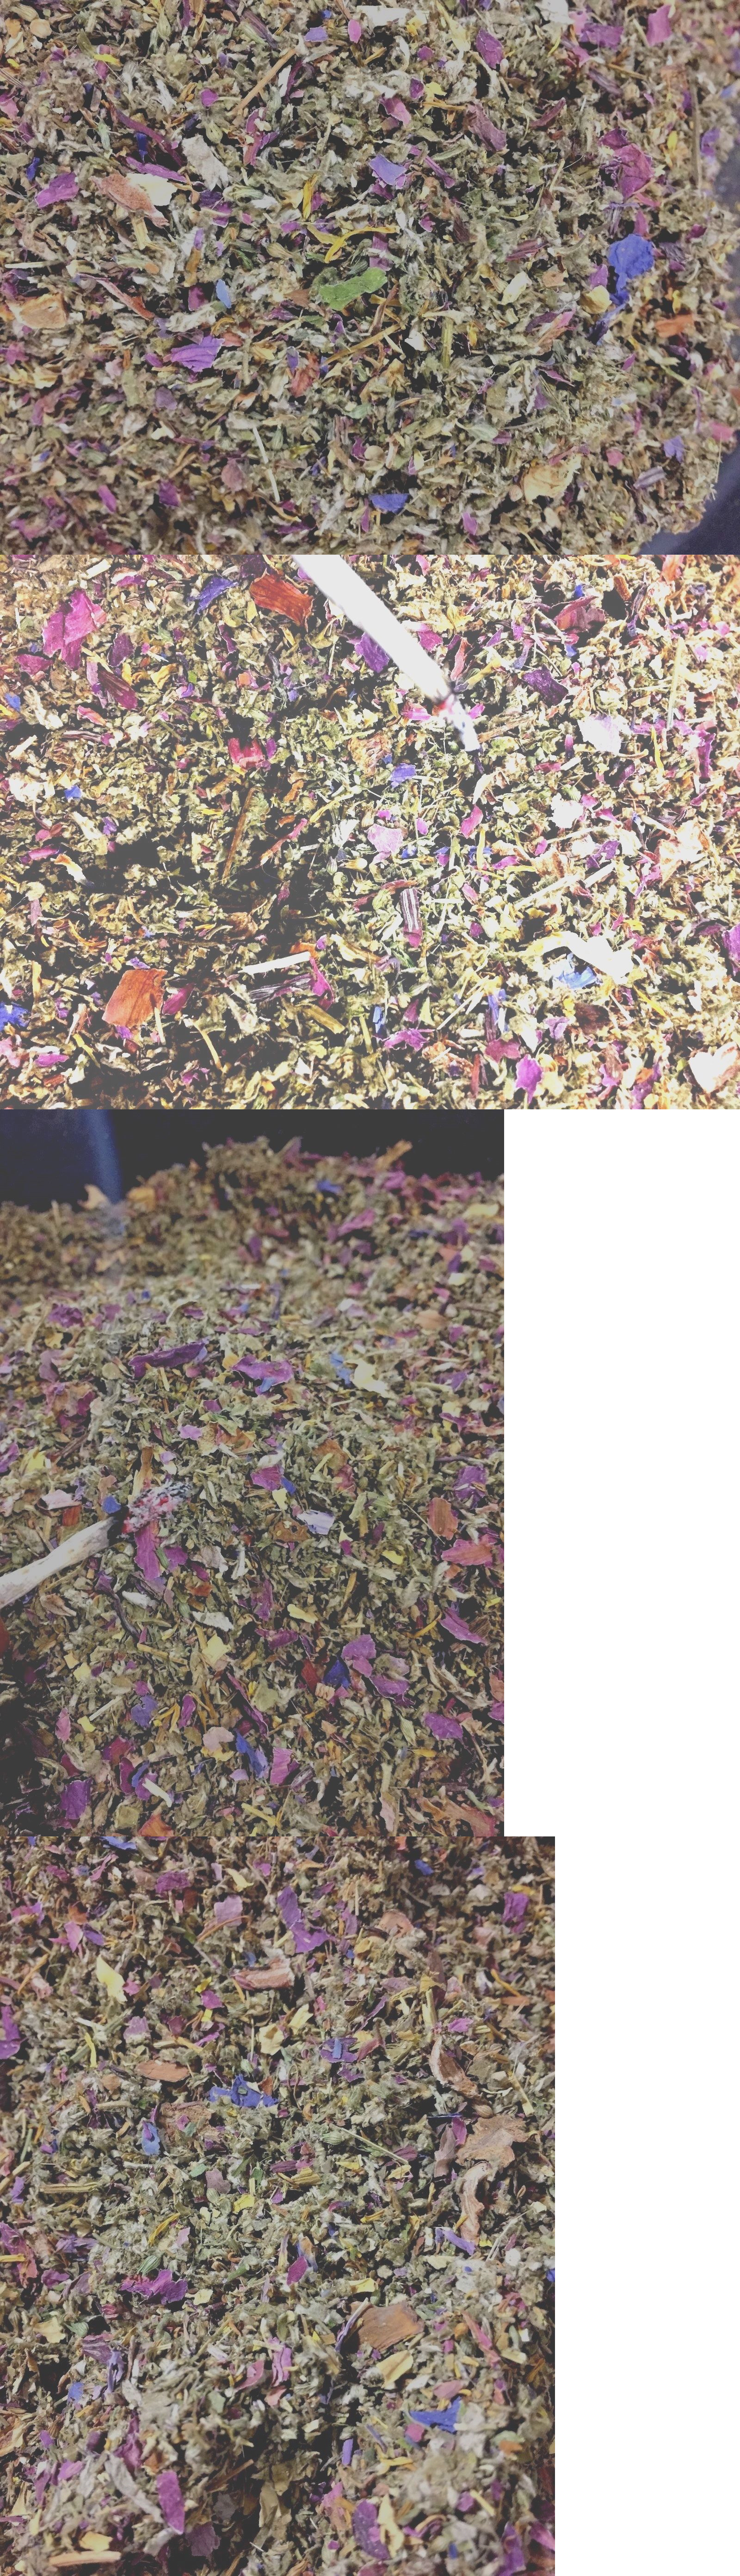 Herbal remedies and resins no3 smoke herbal blend mix blue pink herbal remedies and resins no3 smoke herbal blend mix blue pink white red lotus flowers fast shipping buy it now only 3298 on ebay izmirmasajfo